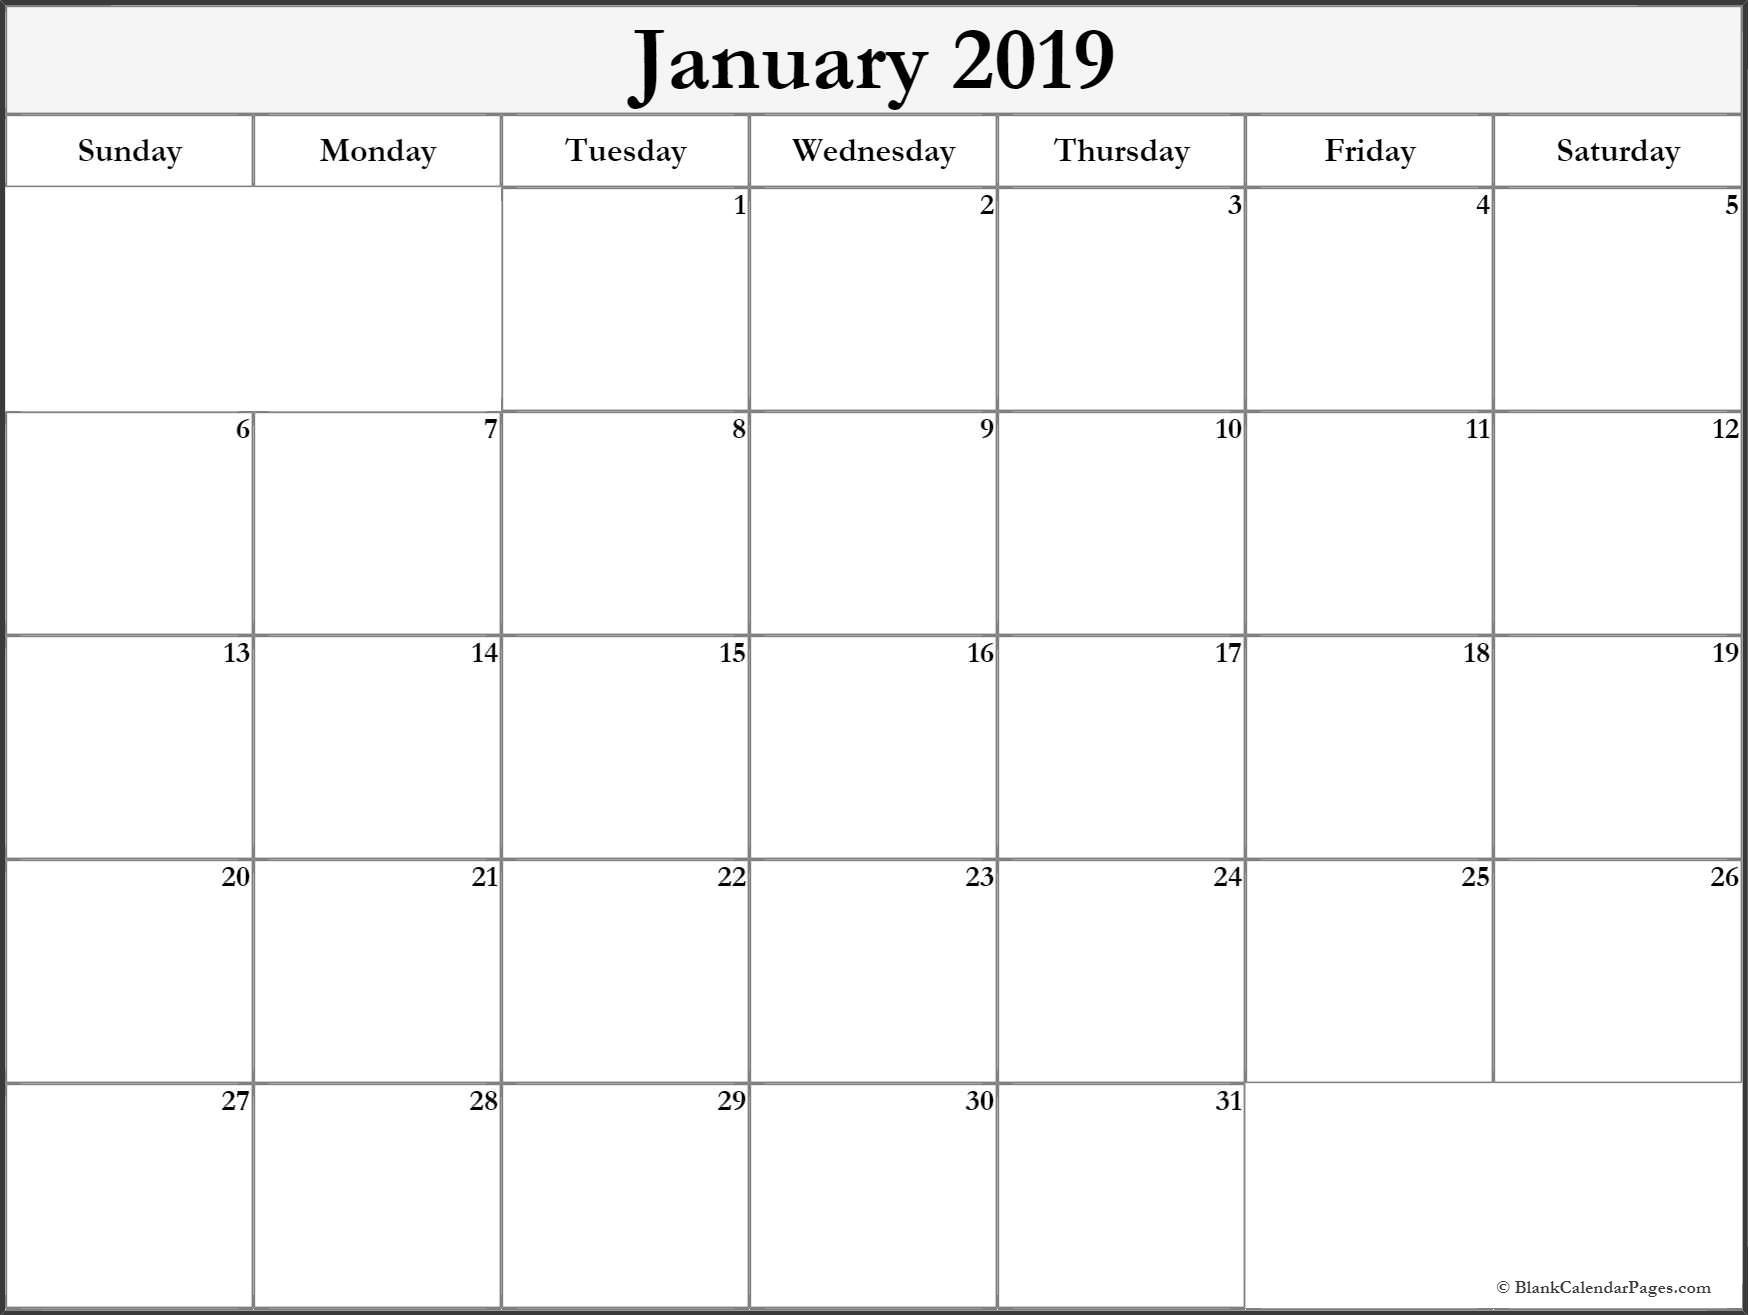 January 2019 monthly calendar printable